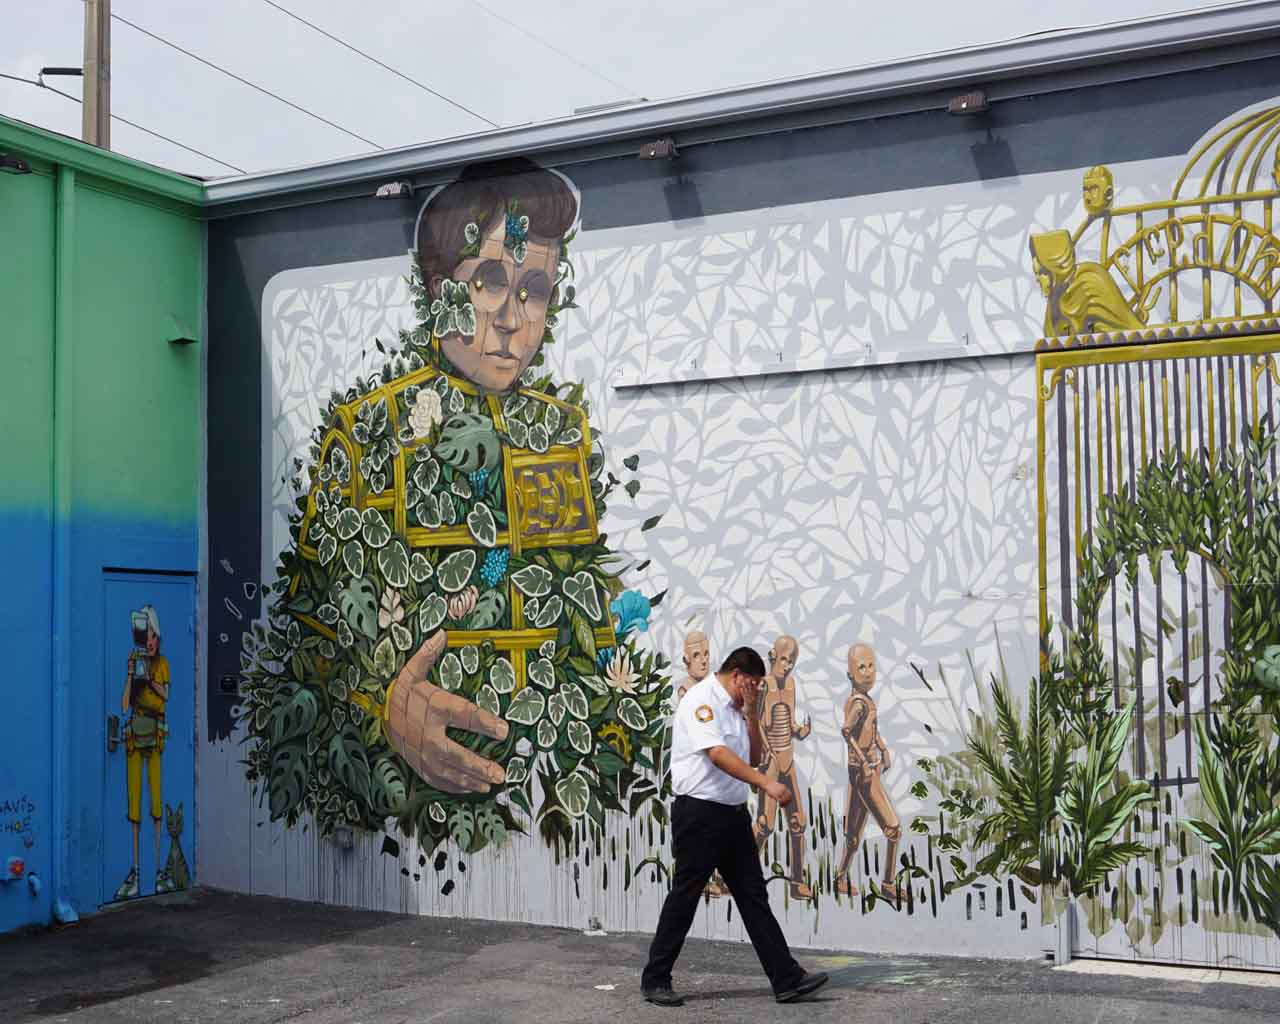 Urban Art in Wynwood Walls